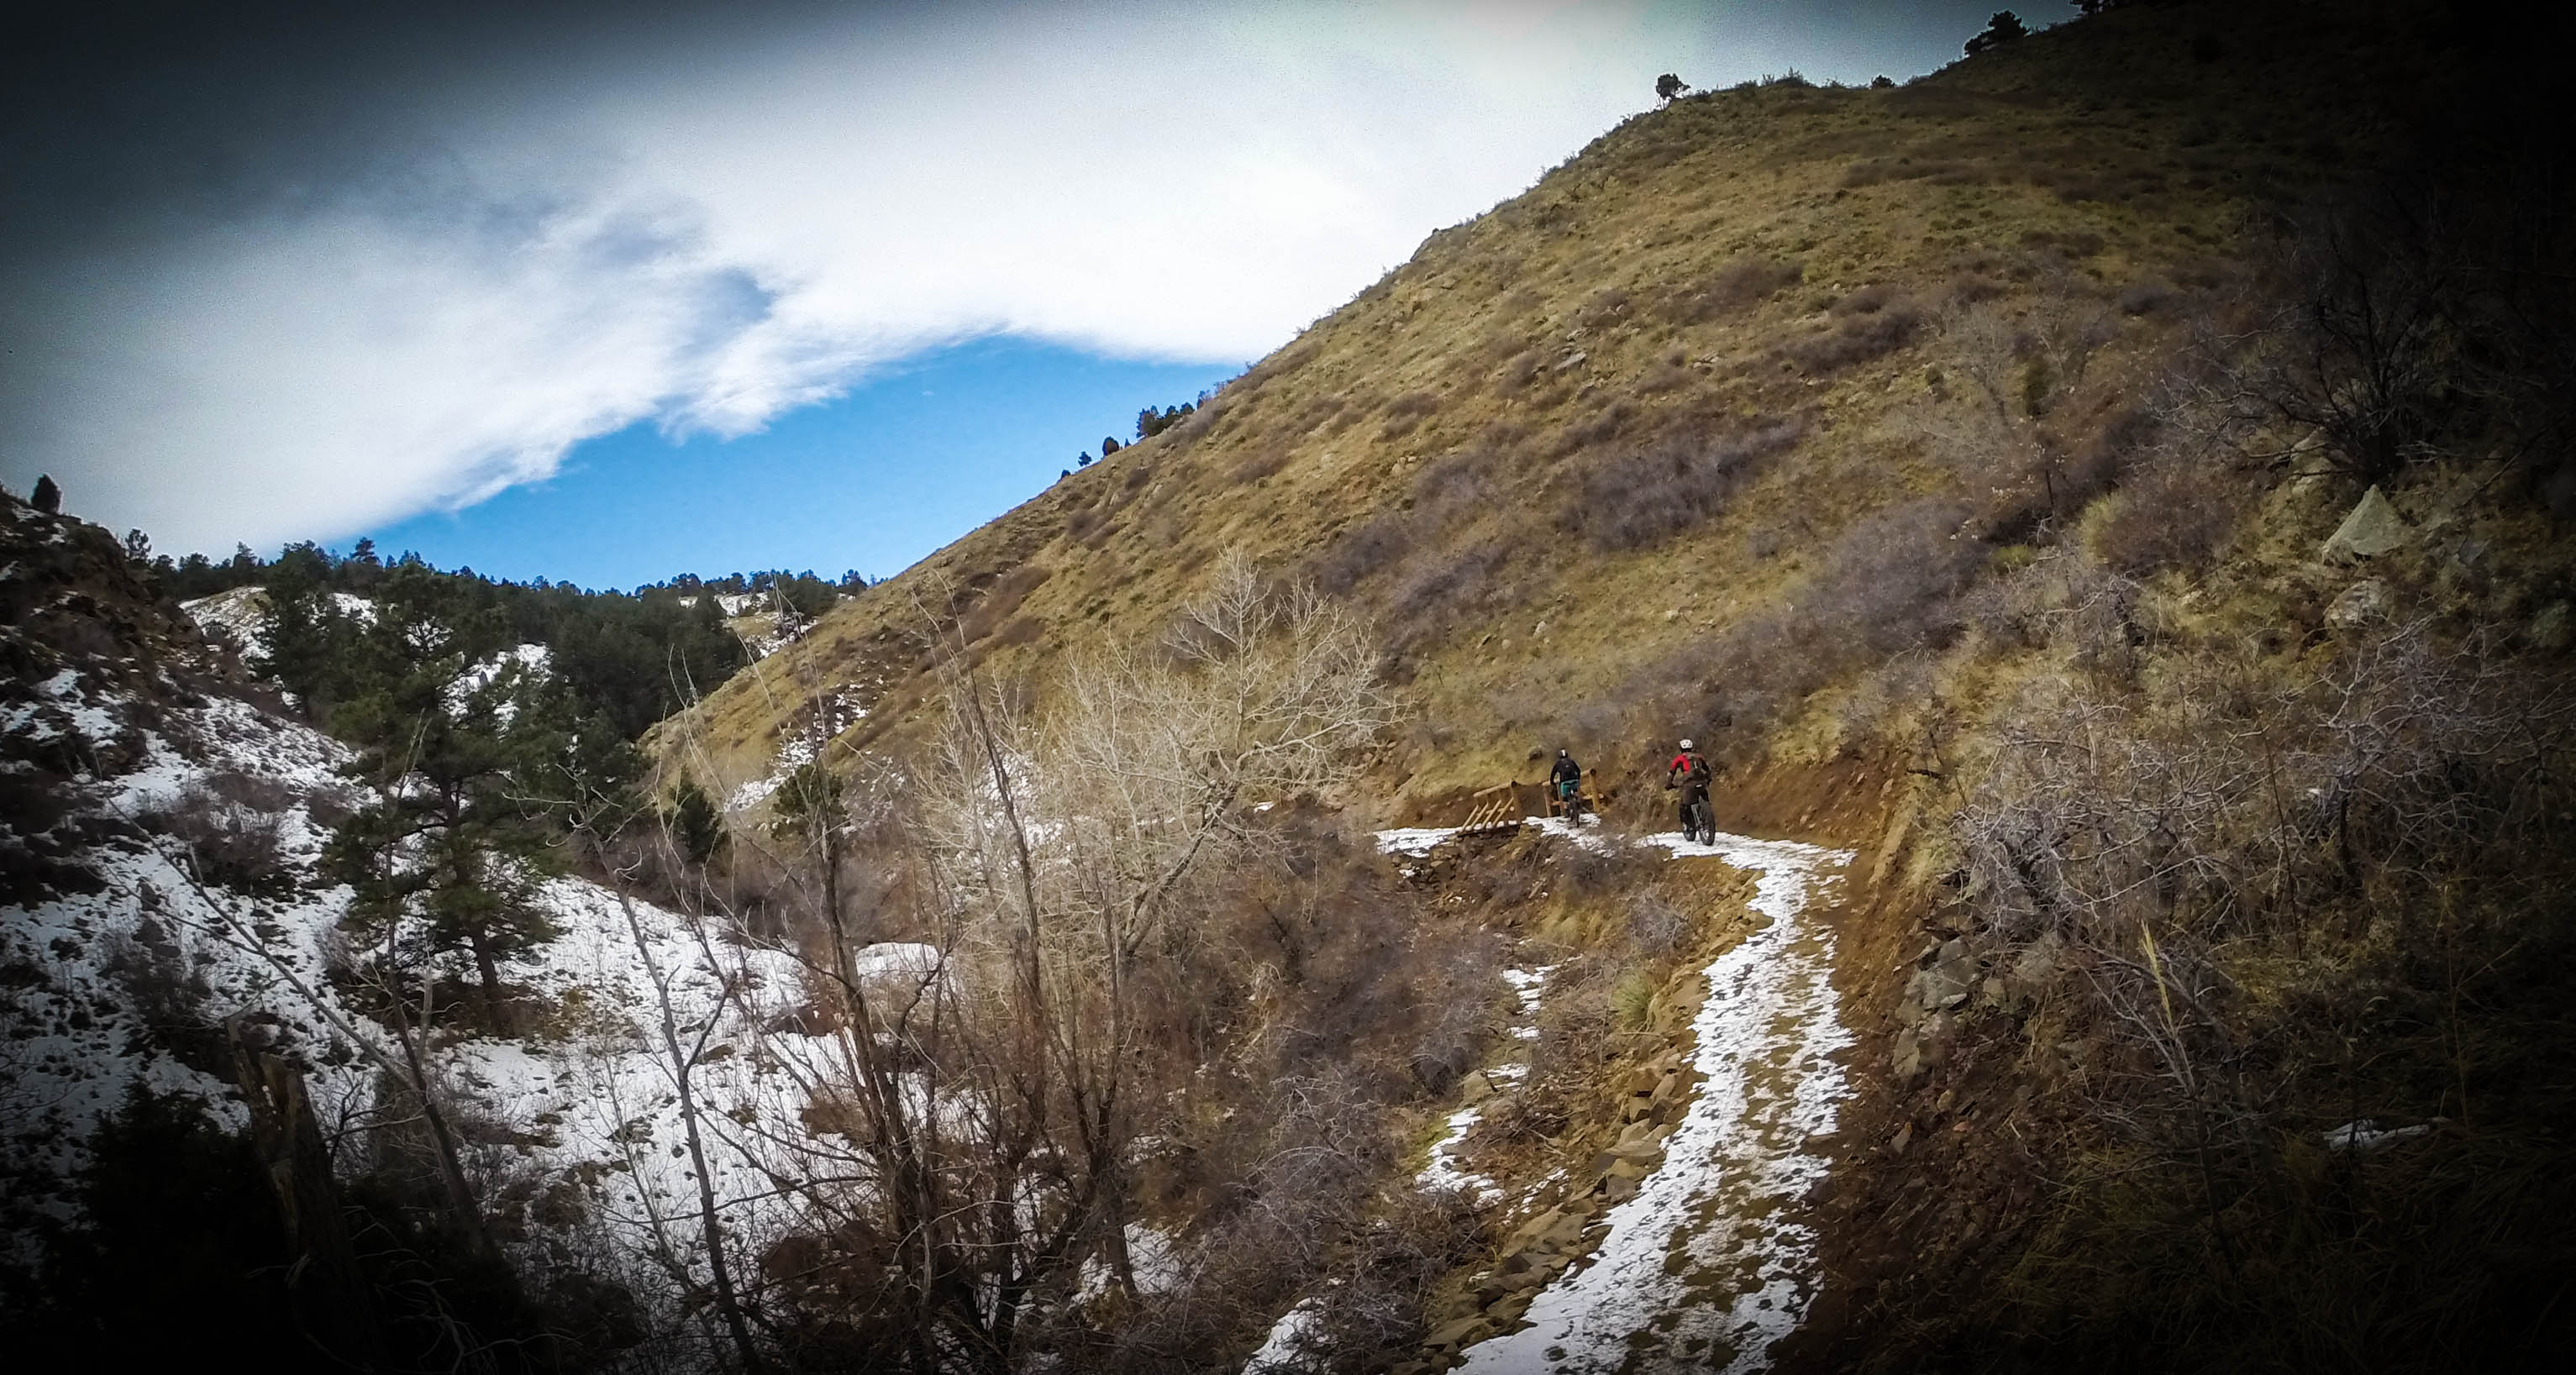 Climbing up the snow littered singletrack of Lower Apex